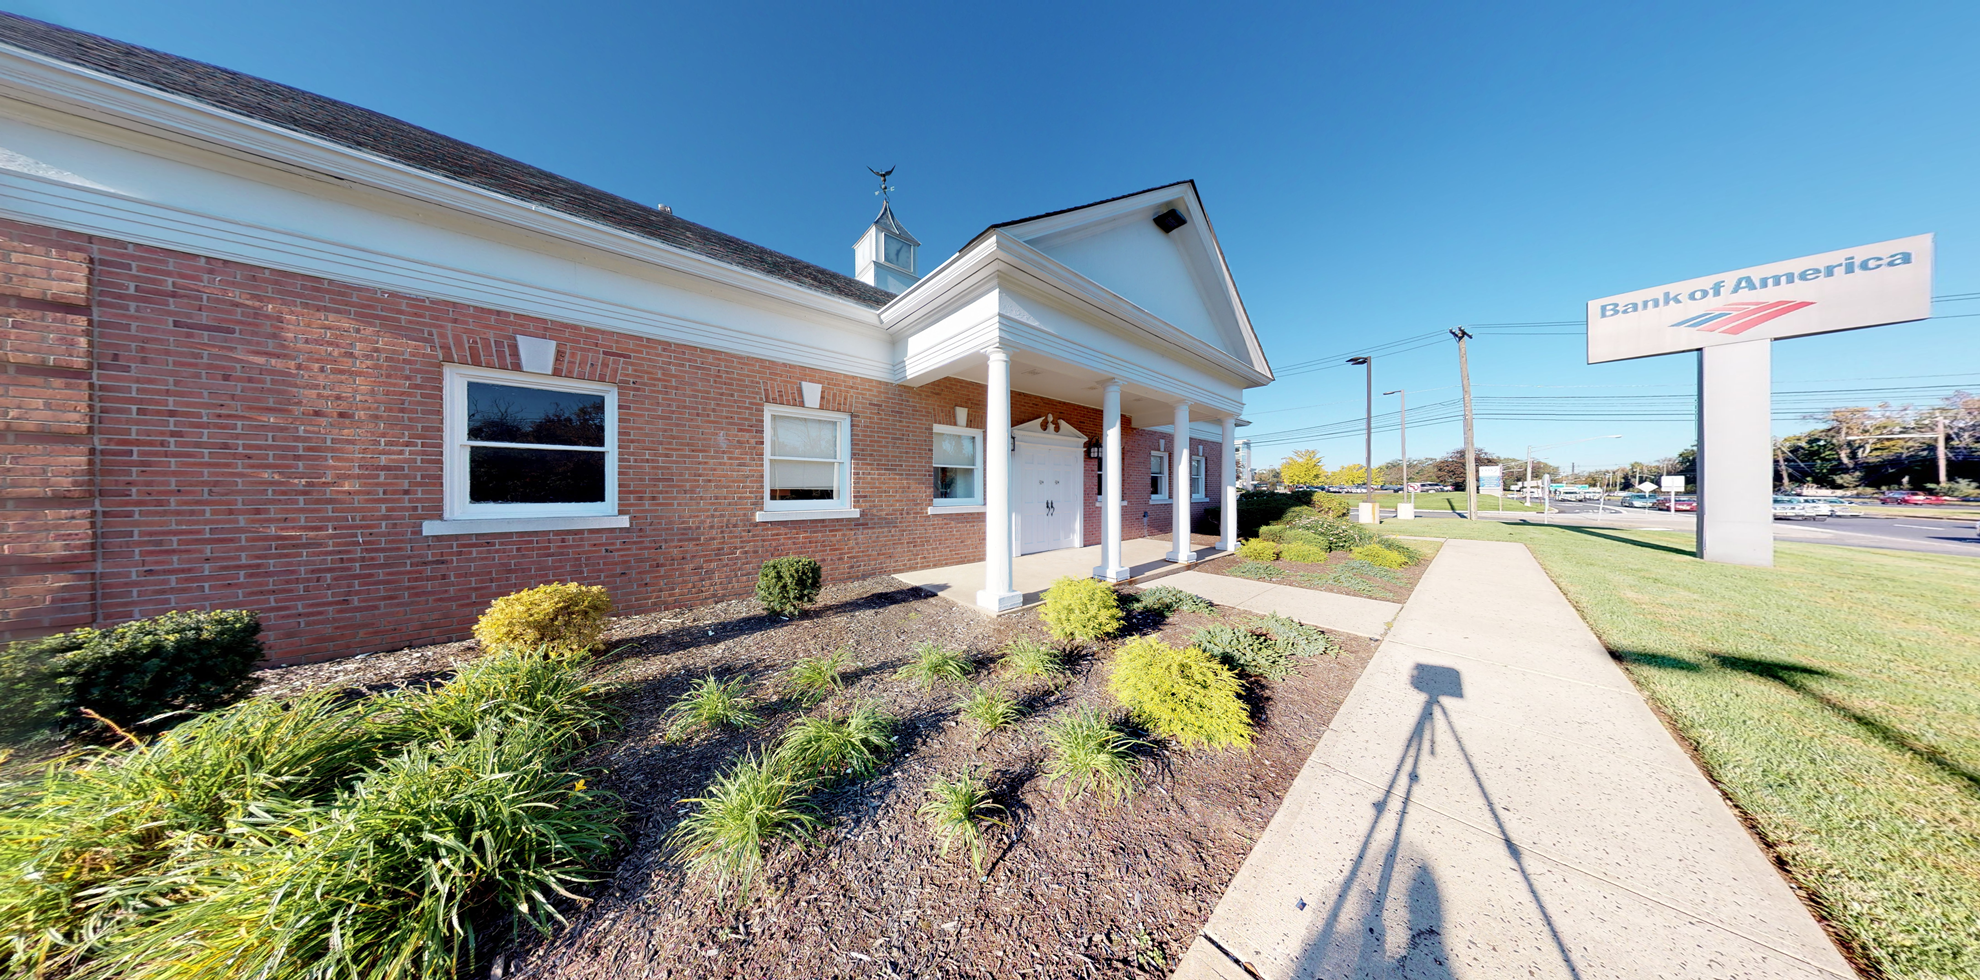 Bank of America financial center with drive-thru ATM | 1848 Easton Ave, Somerset, NJ 08873